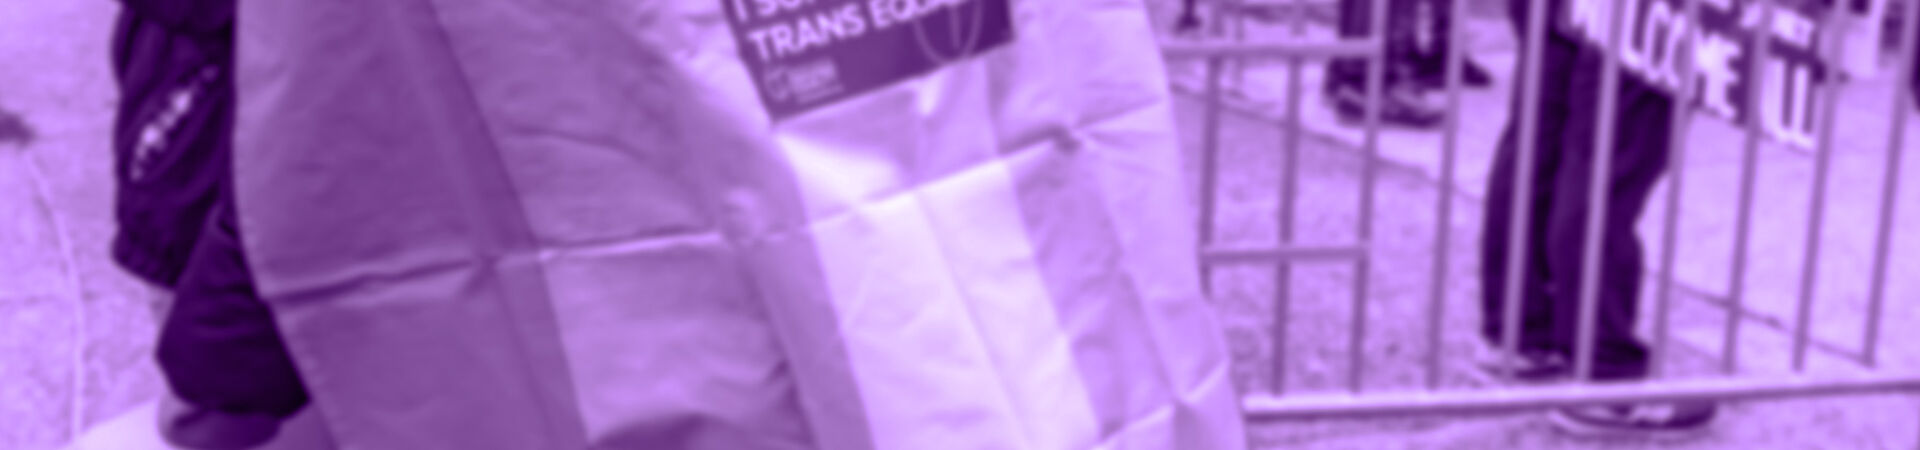 Banner - Joining the Movement for Trans Rights